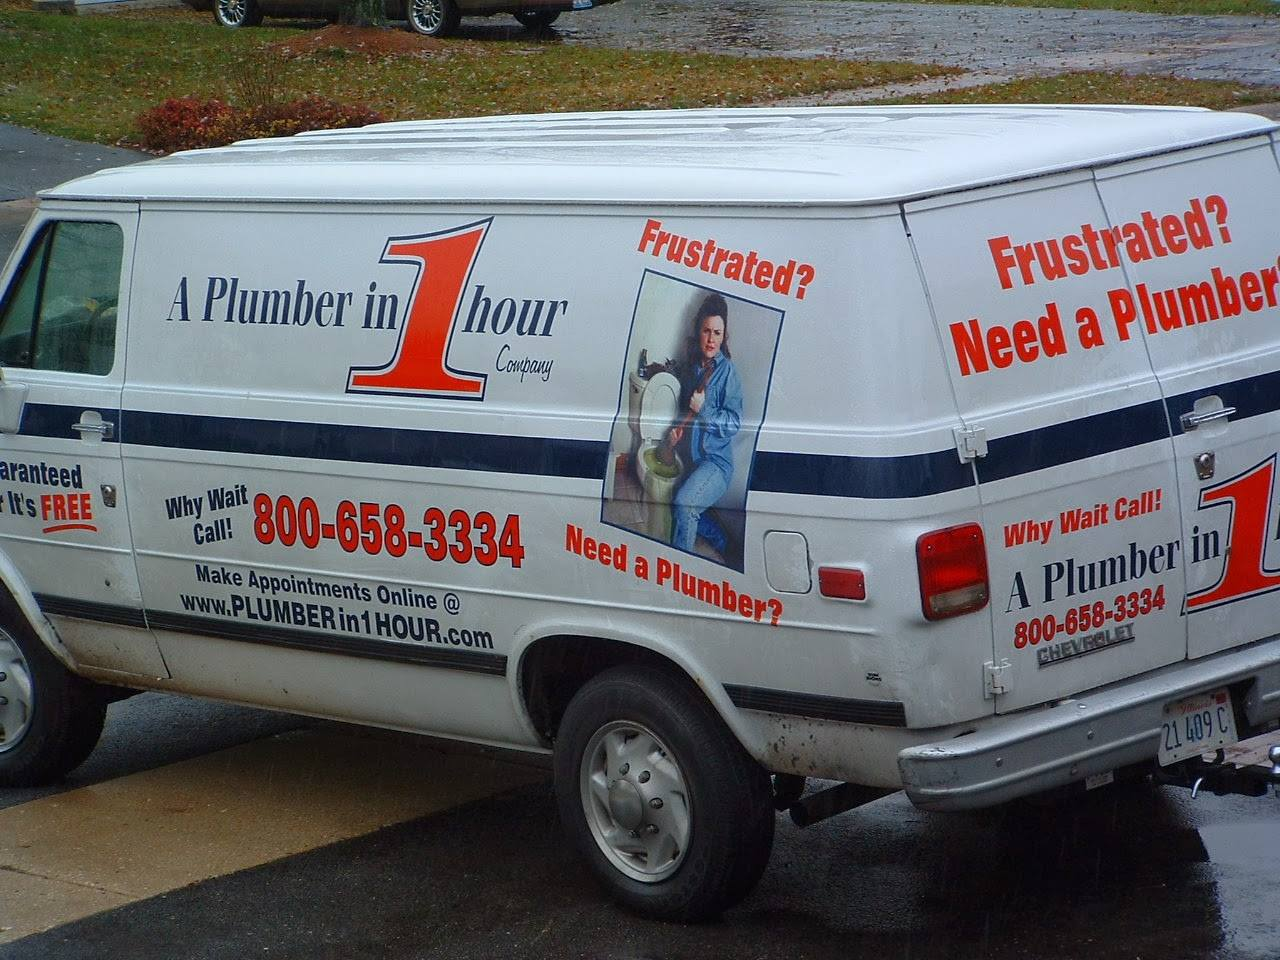 Plumbing company at its service